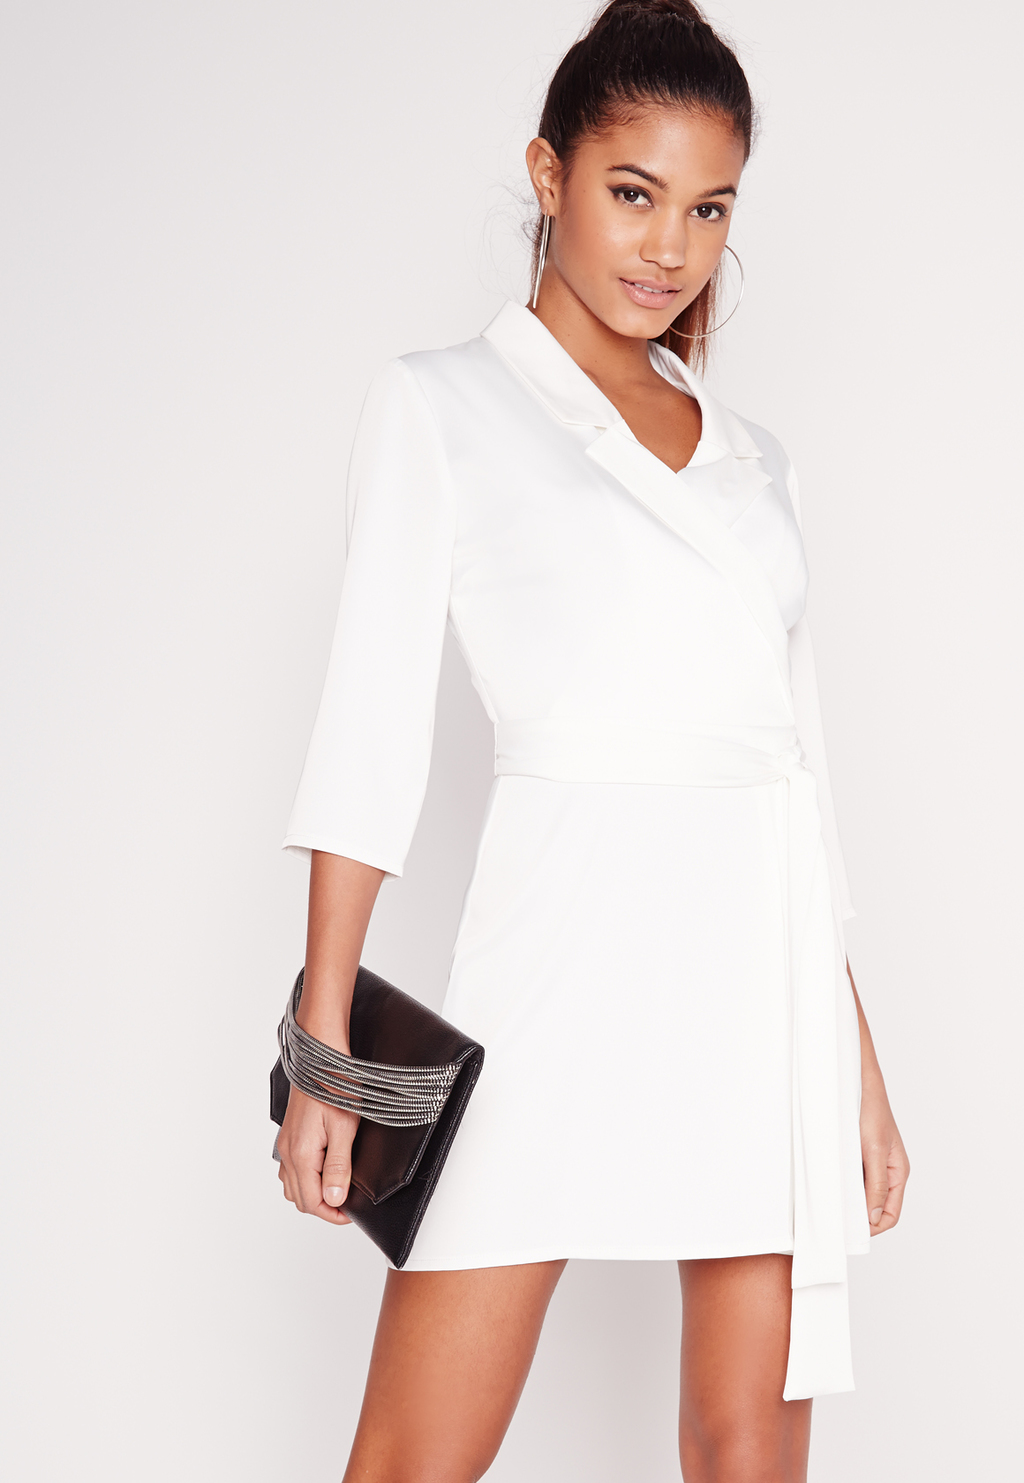 Silky Wrap Blazer Dress White, White - style: shirt; length: mid thigh; neckline: shirt collar/peter pan/zip with opening; fit: tailored/fitted; pattern: plain; waist detail: belted waist/tie at waist/drawstring; predominant colour: white; occasions: casual; fibres: polyester/polyamide - 100%; sleeve length: 3/4 length; sleeve style: standard; pattern type: fabric; texture group: other - light to midweight; season: s/s 2016; wardrobe: basic